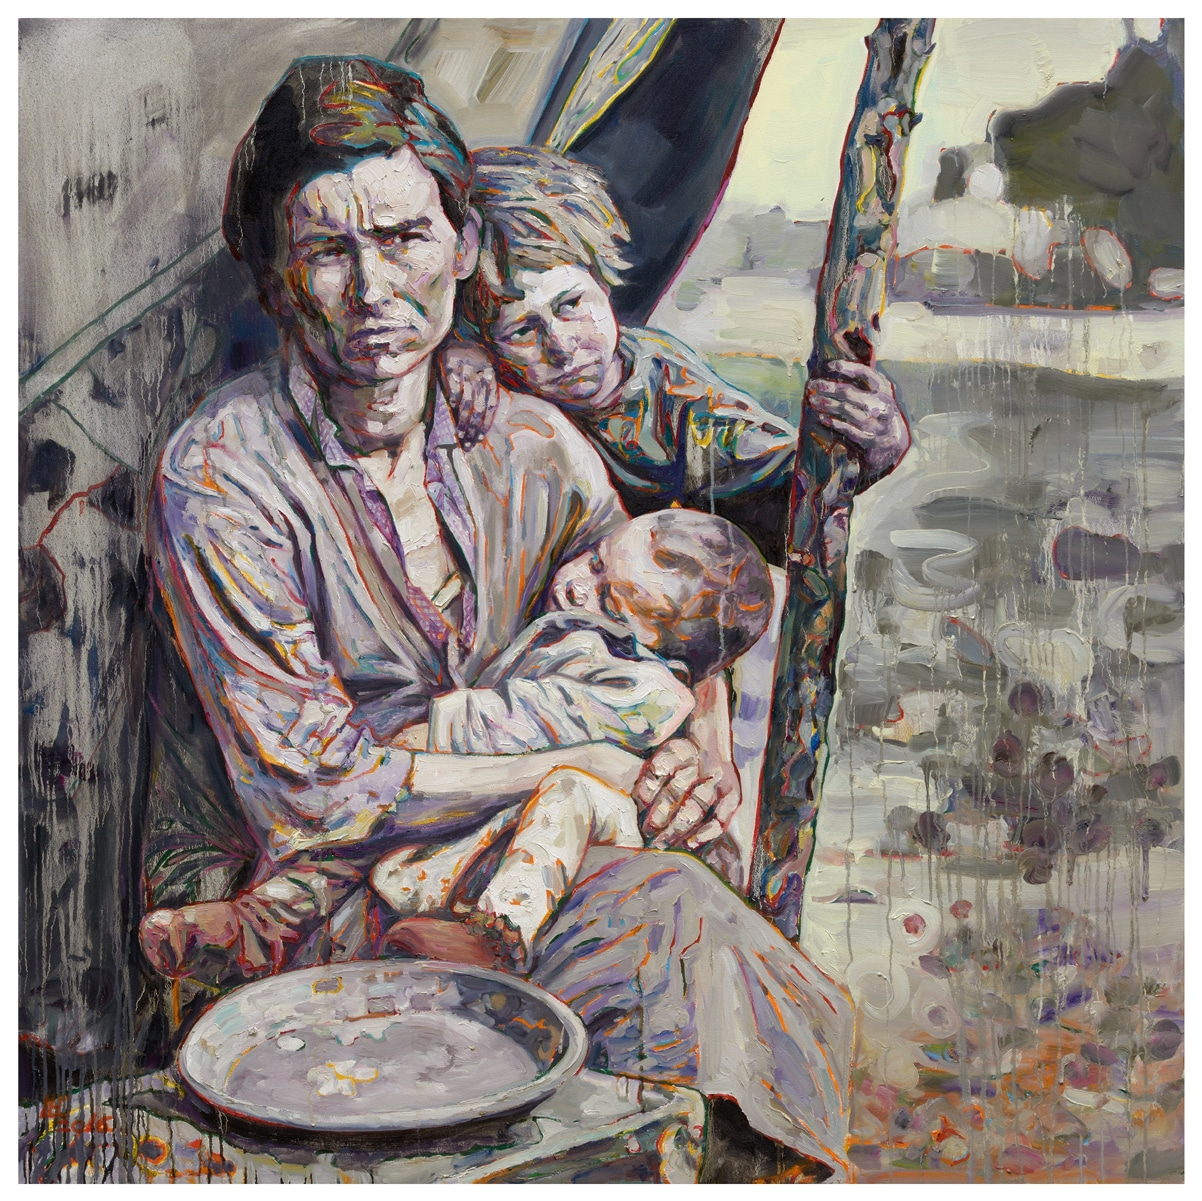 Migrant Mother: Mealtime, 2016, by Hung Liu